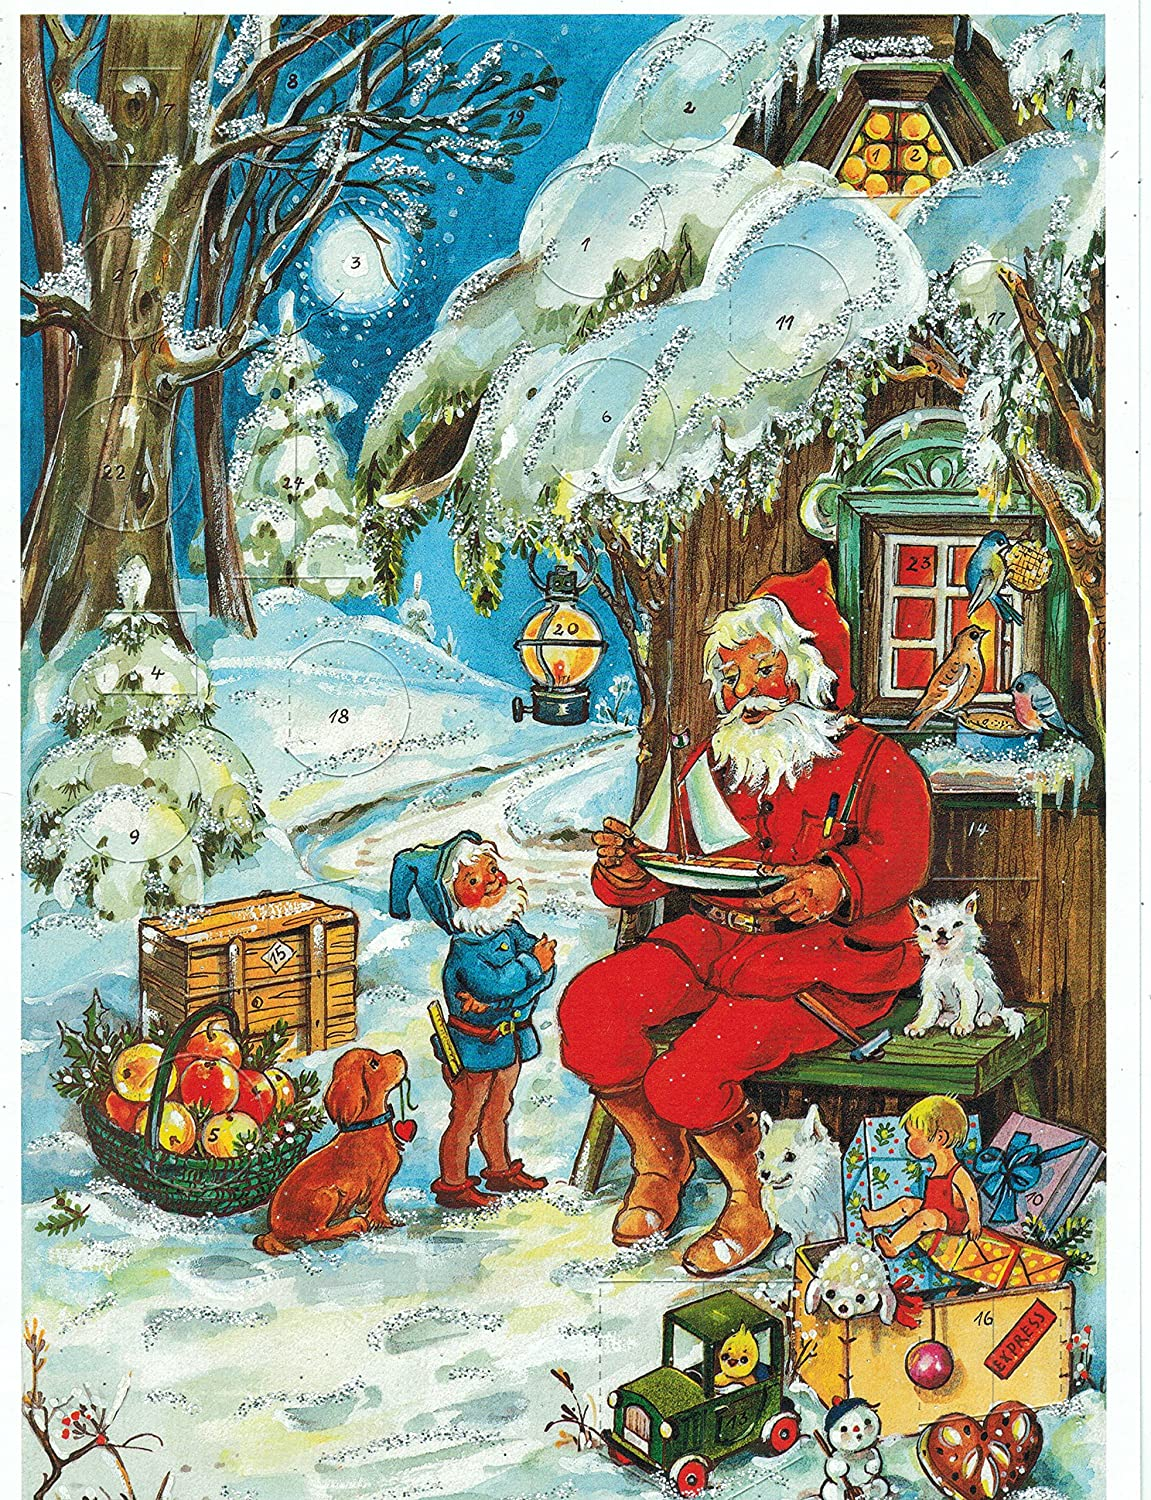 Advent Calendar 24 doors 297 x 210 mm - Snow Scene Santa Claus - with glitter and translucent windows - RS802 - traditional antique German Design Richard Sellmer Verlag RS 802